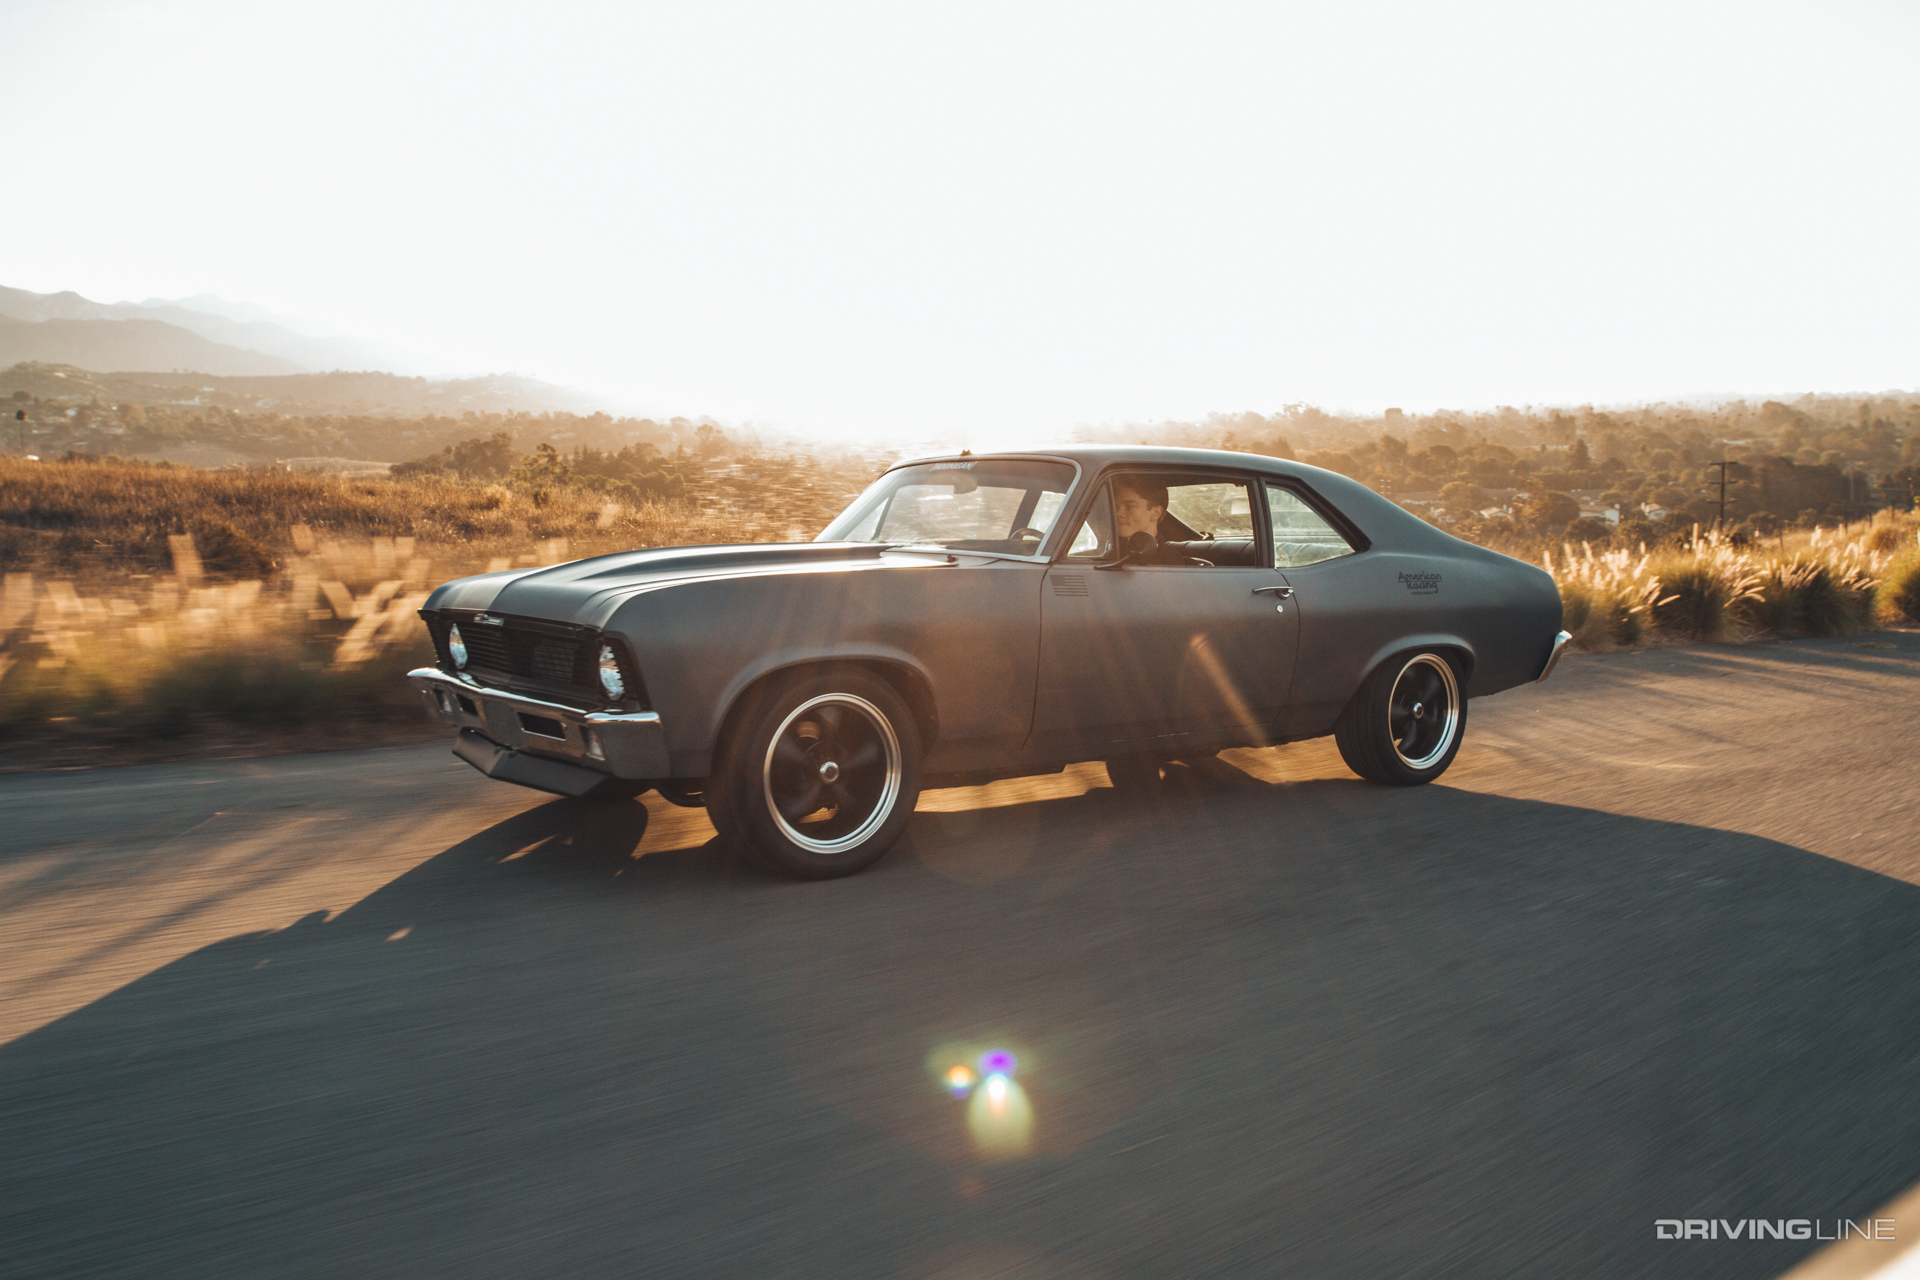 Ride of the Week: A Made-For-Thrills '70 Chevy Nova ...